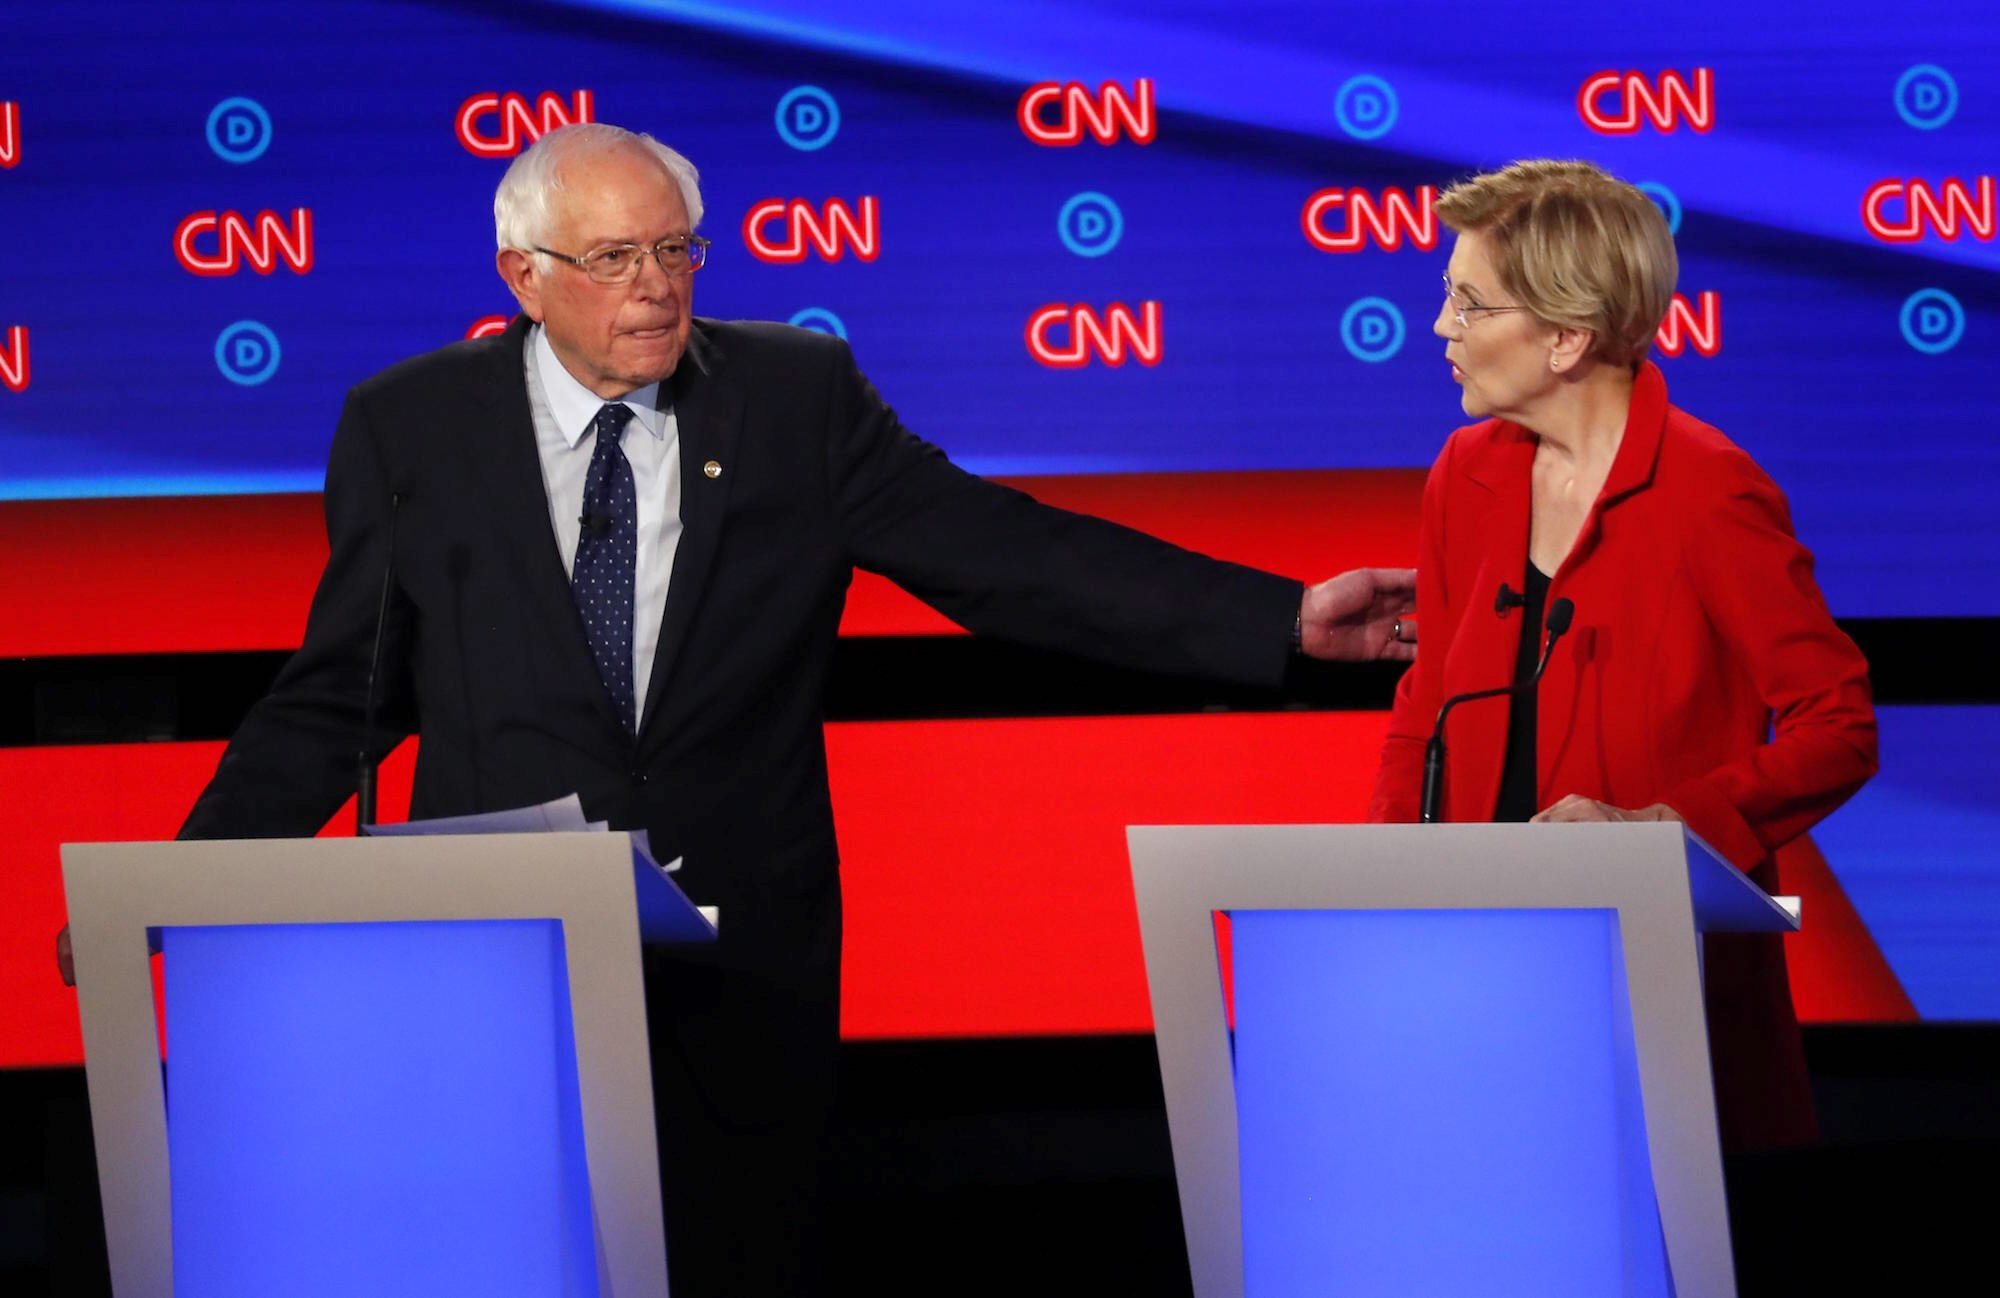 The Demcratic debate: A 'liberal sandwich with a moderate filling'